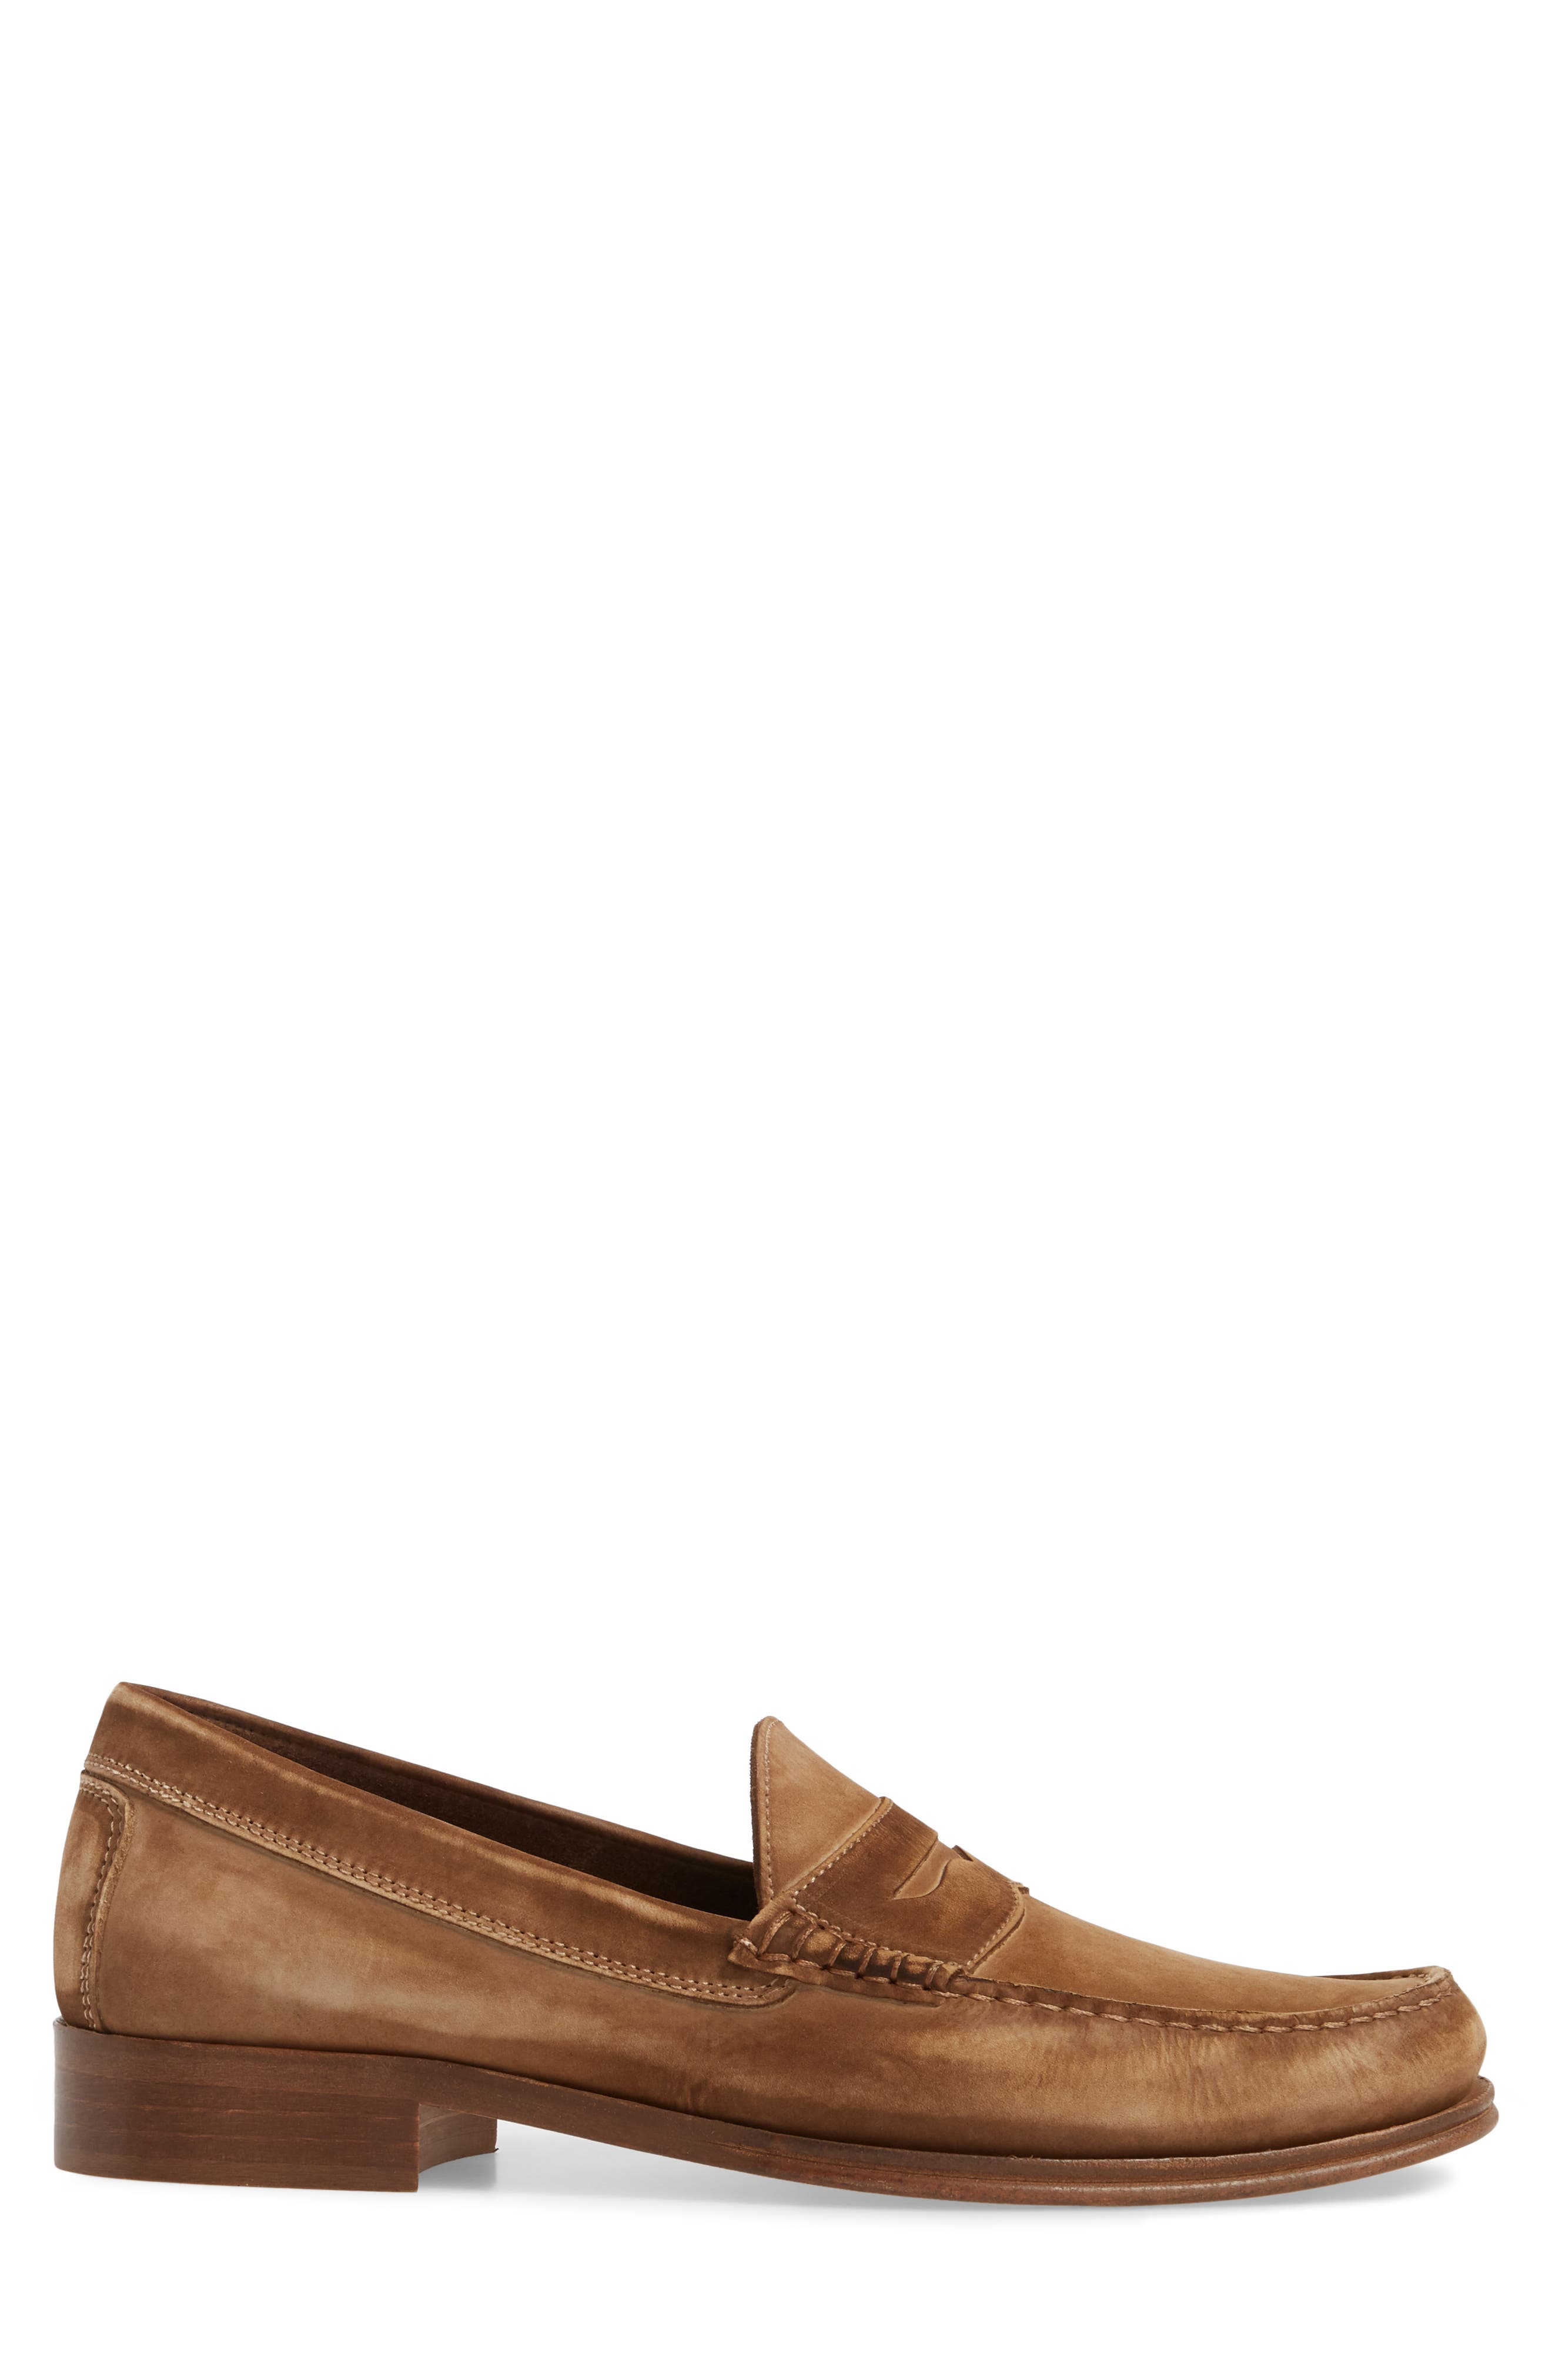 Nicola Penny Loafer,                             Alternate thumbnail 21, color,